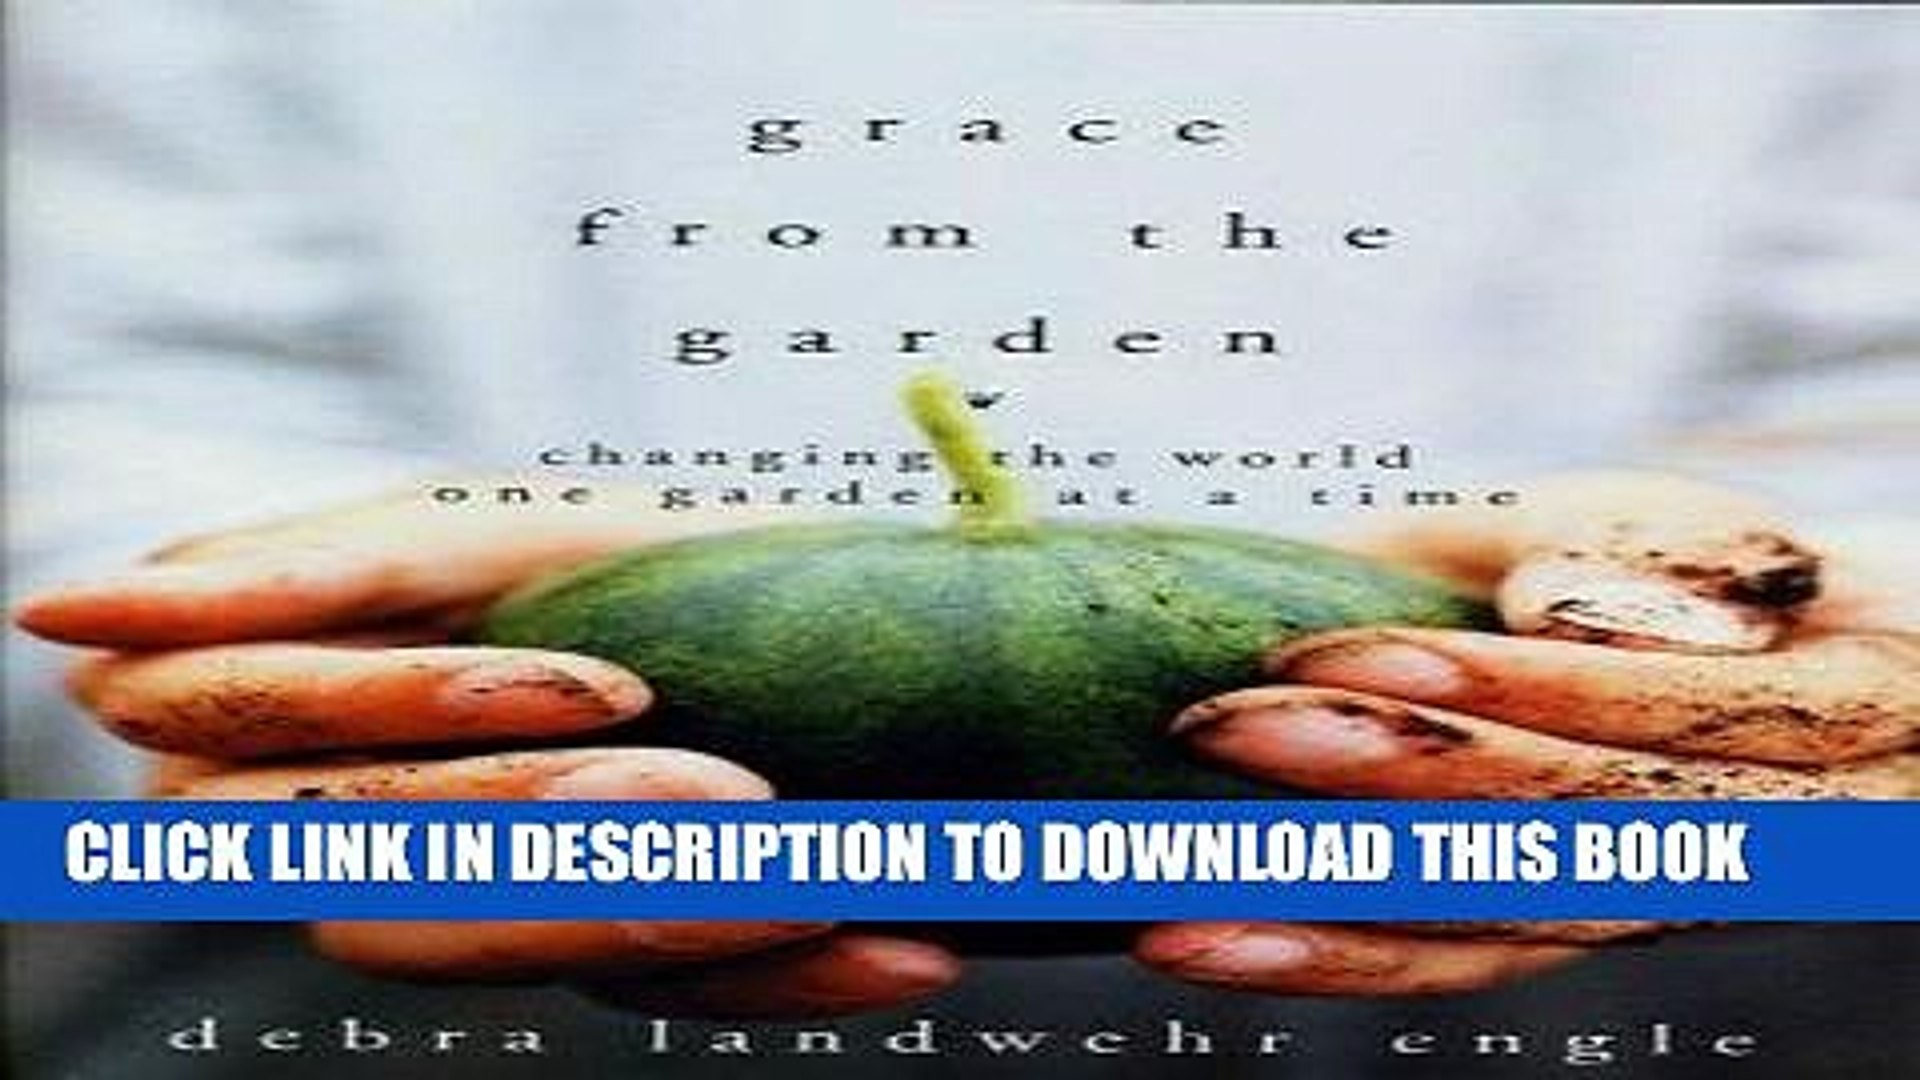 Best Seller Grace from the Garden: Changing the World One Garden at a Time Free Read